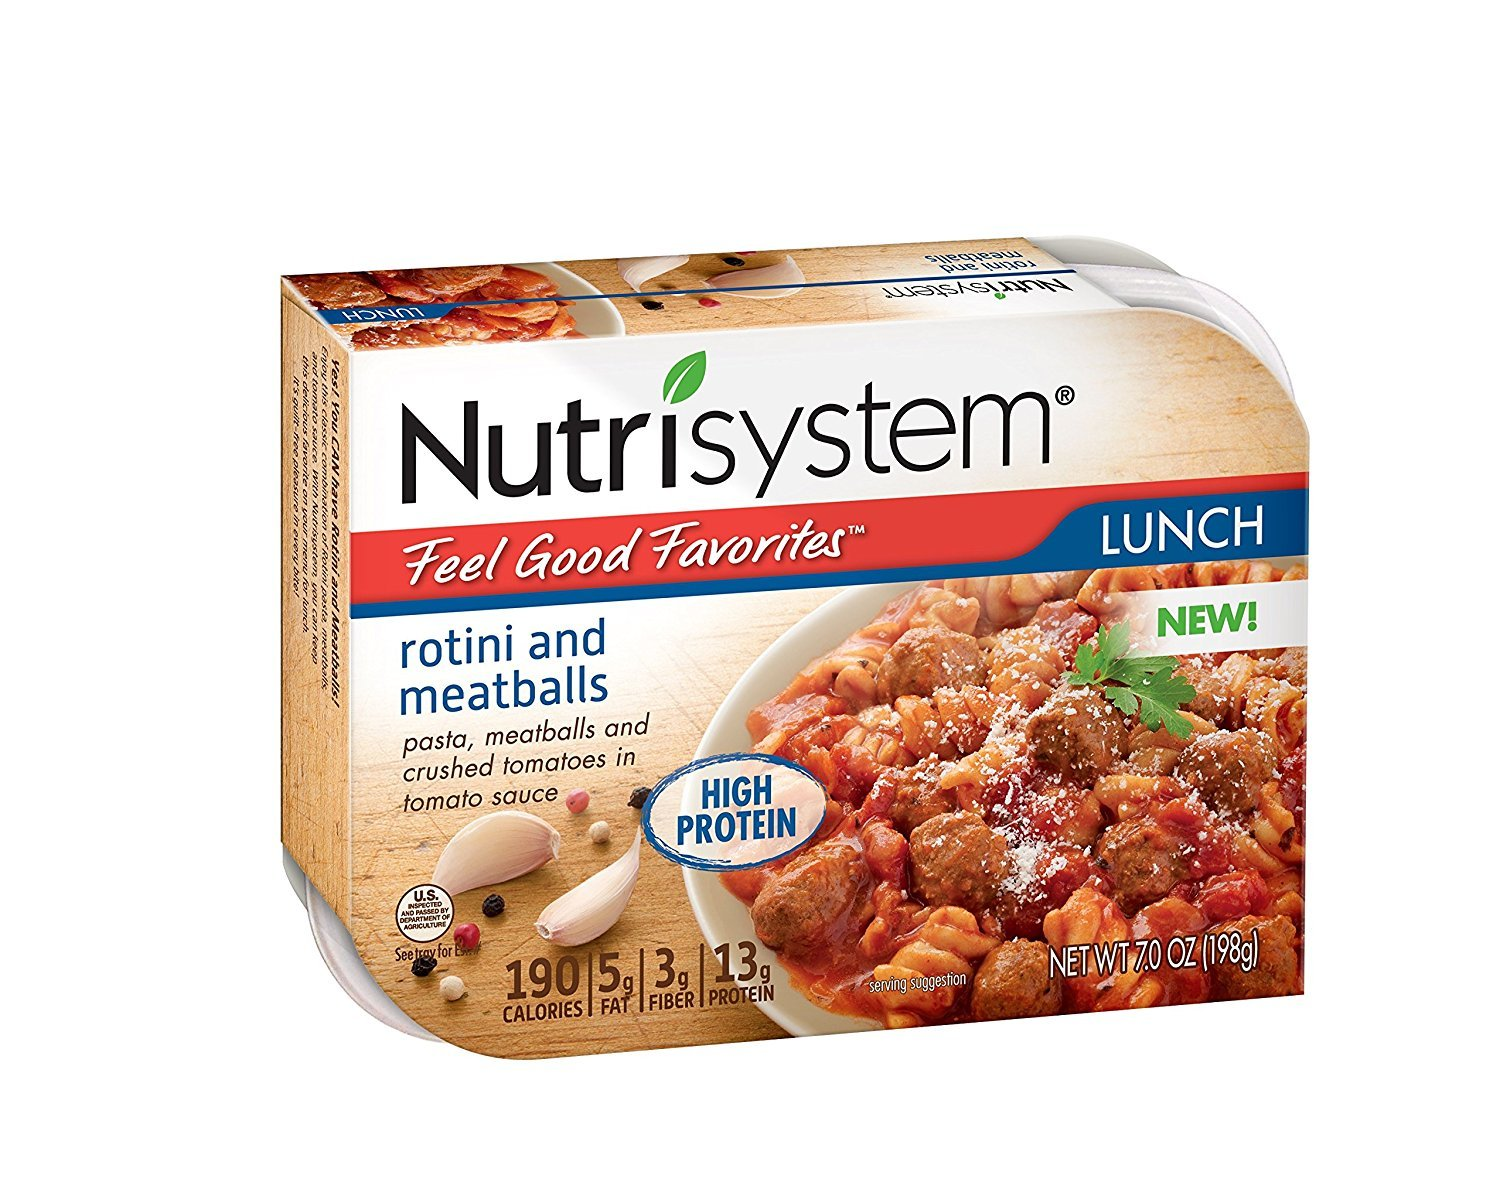 Nutrisystem Feel Good Favorites Rotini and Meatballs, 6 ct LIMITED TIME PROMO